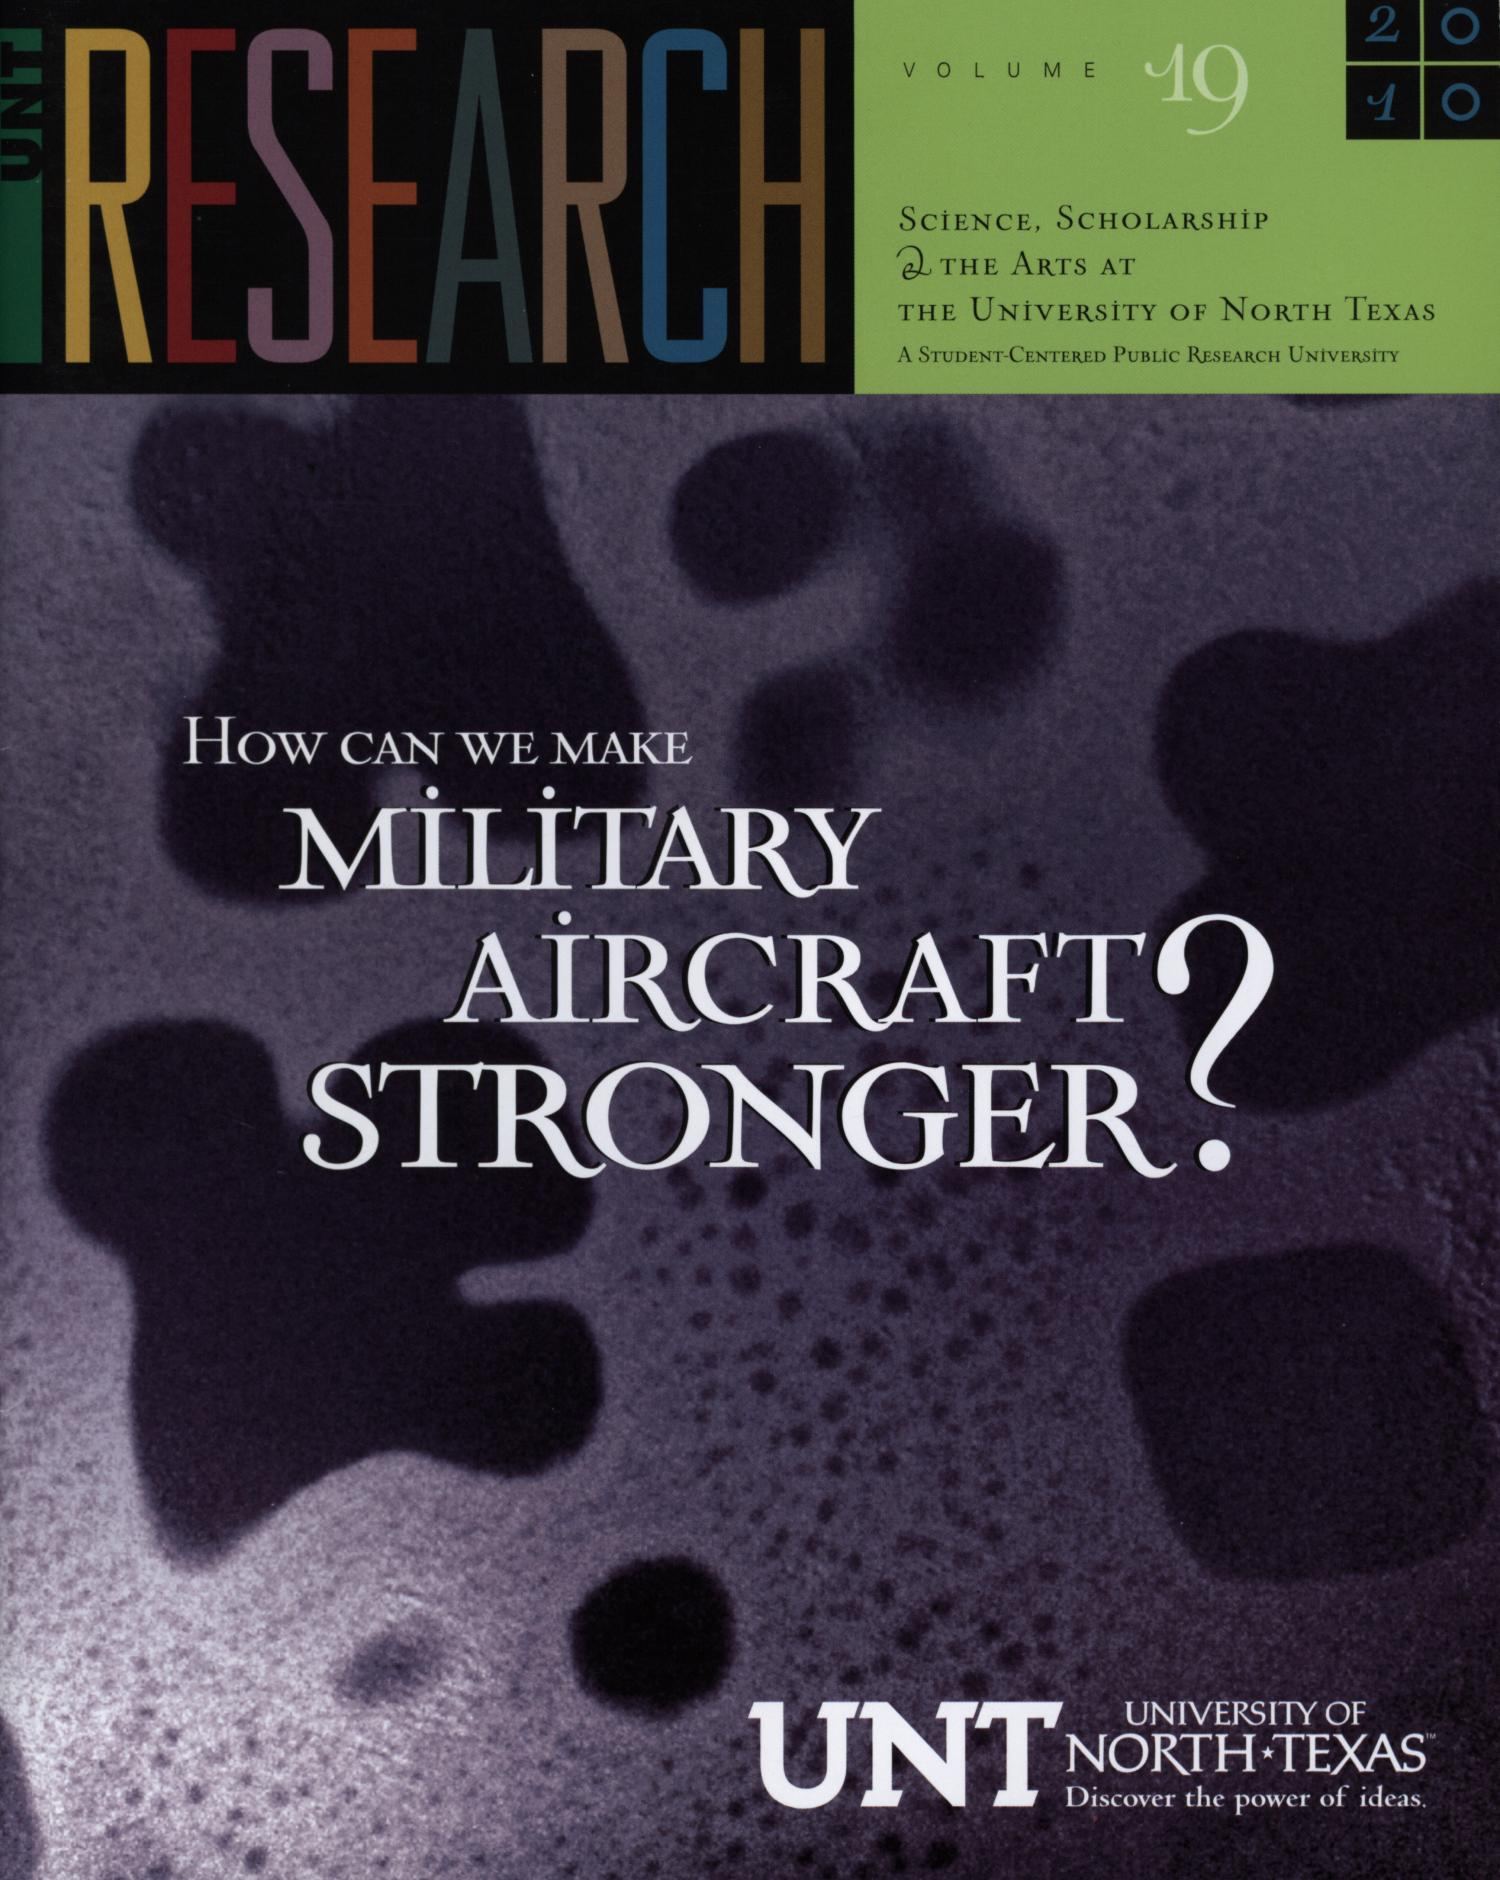 UNT Research, Volume 19, 2010                                                                                                      Front Cover